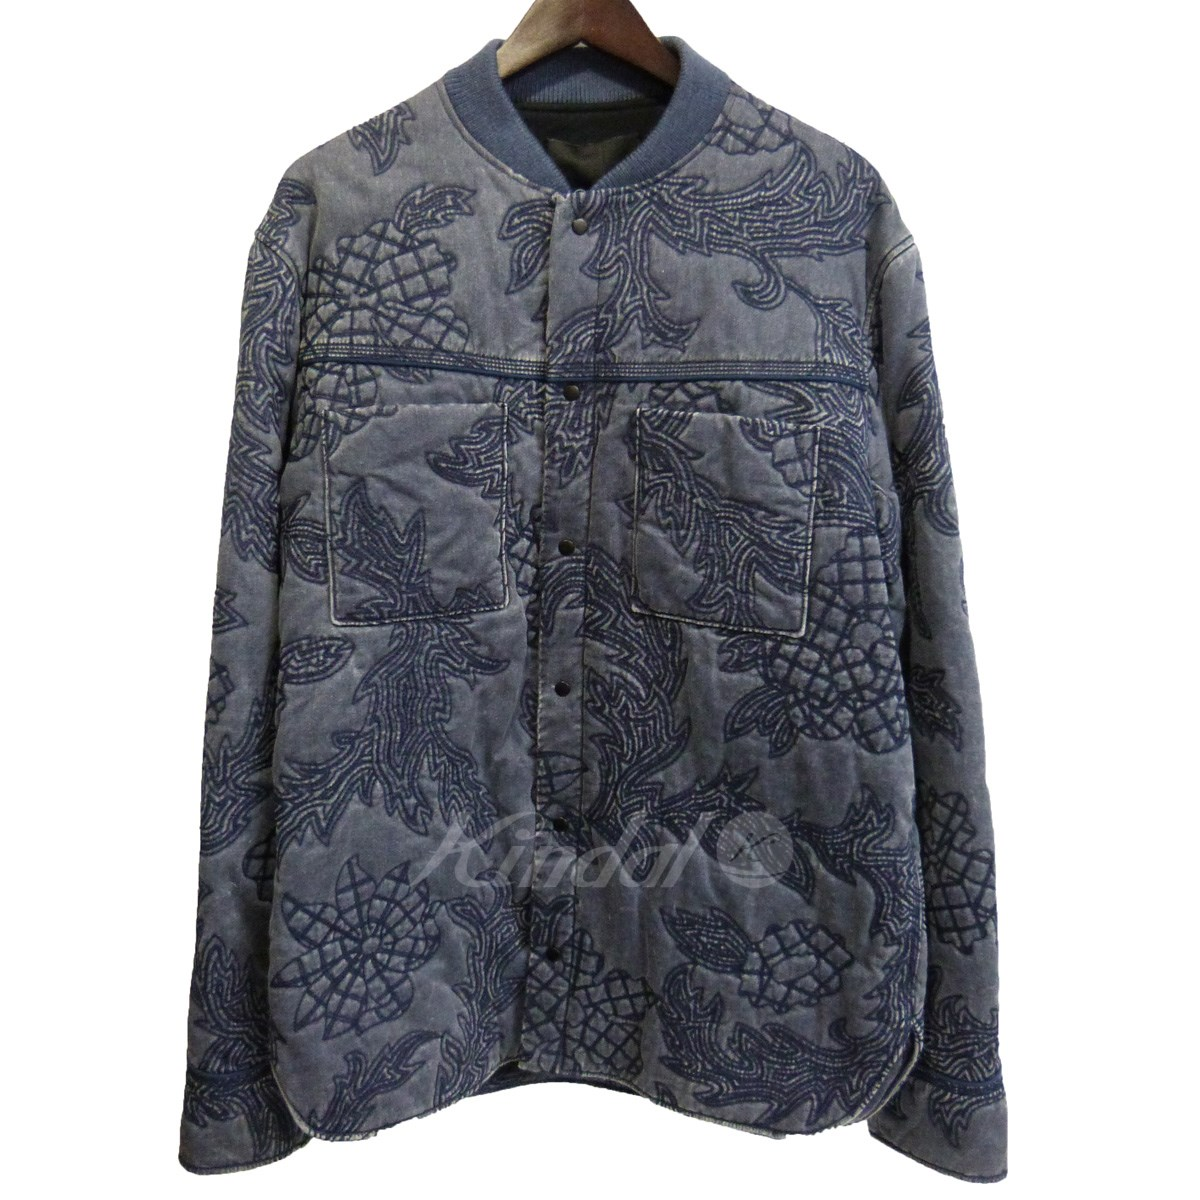 【中古】3.1 phillip lim 14AW 「quilted western shirt jacket」 デニム中綿ブルゾン 【送料無料】 【023773】 【KIND1551】